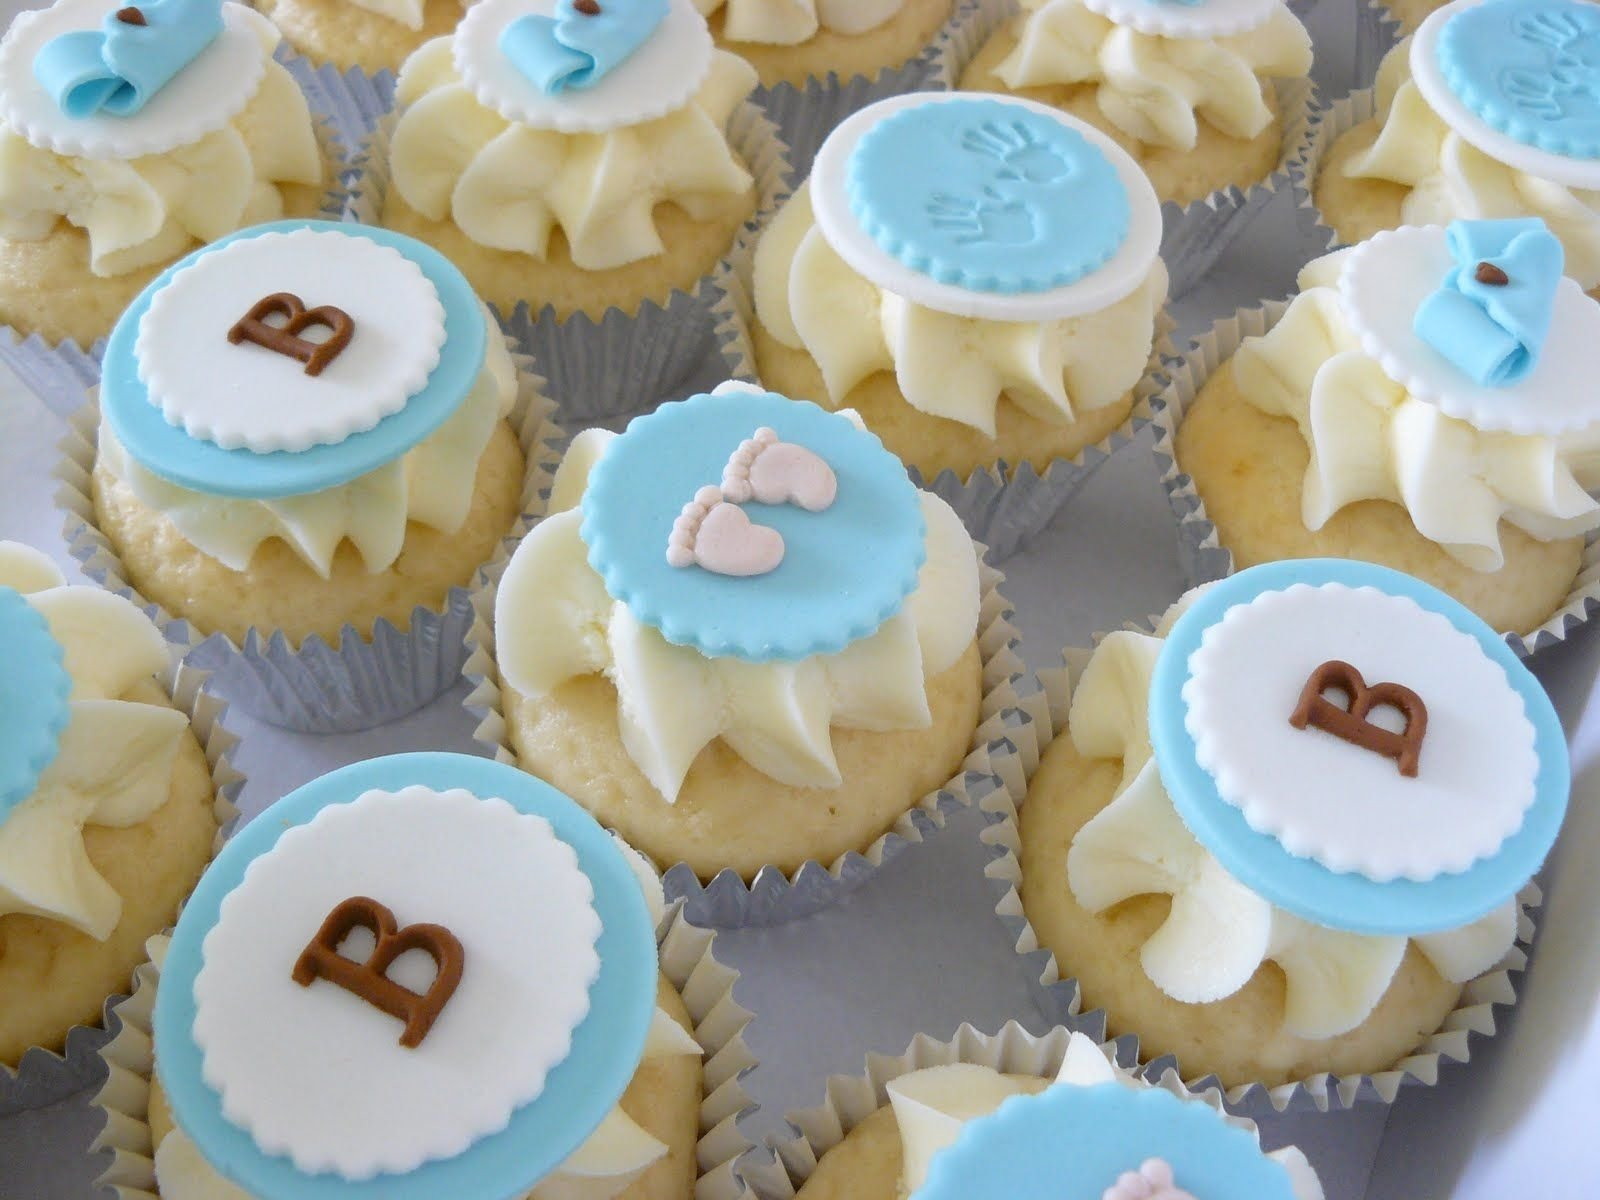 10 Famous Baby Shower Cupcake Decorating Ideas baby shower cupcakes decorations the cup cake taste cupcakes 2021